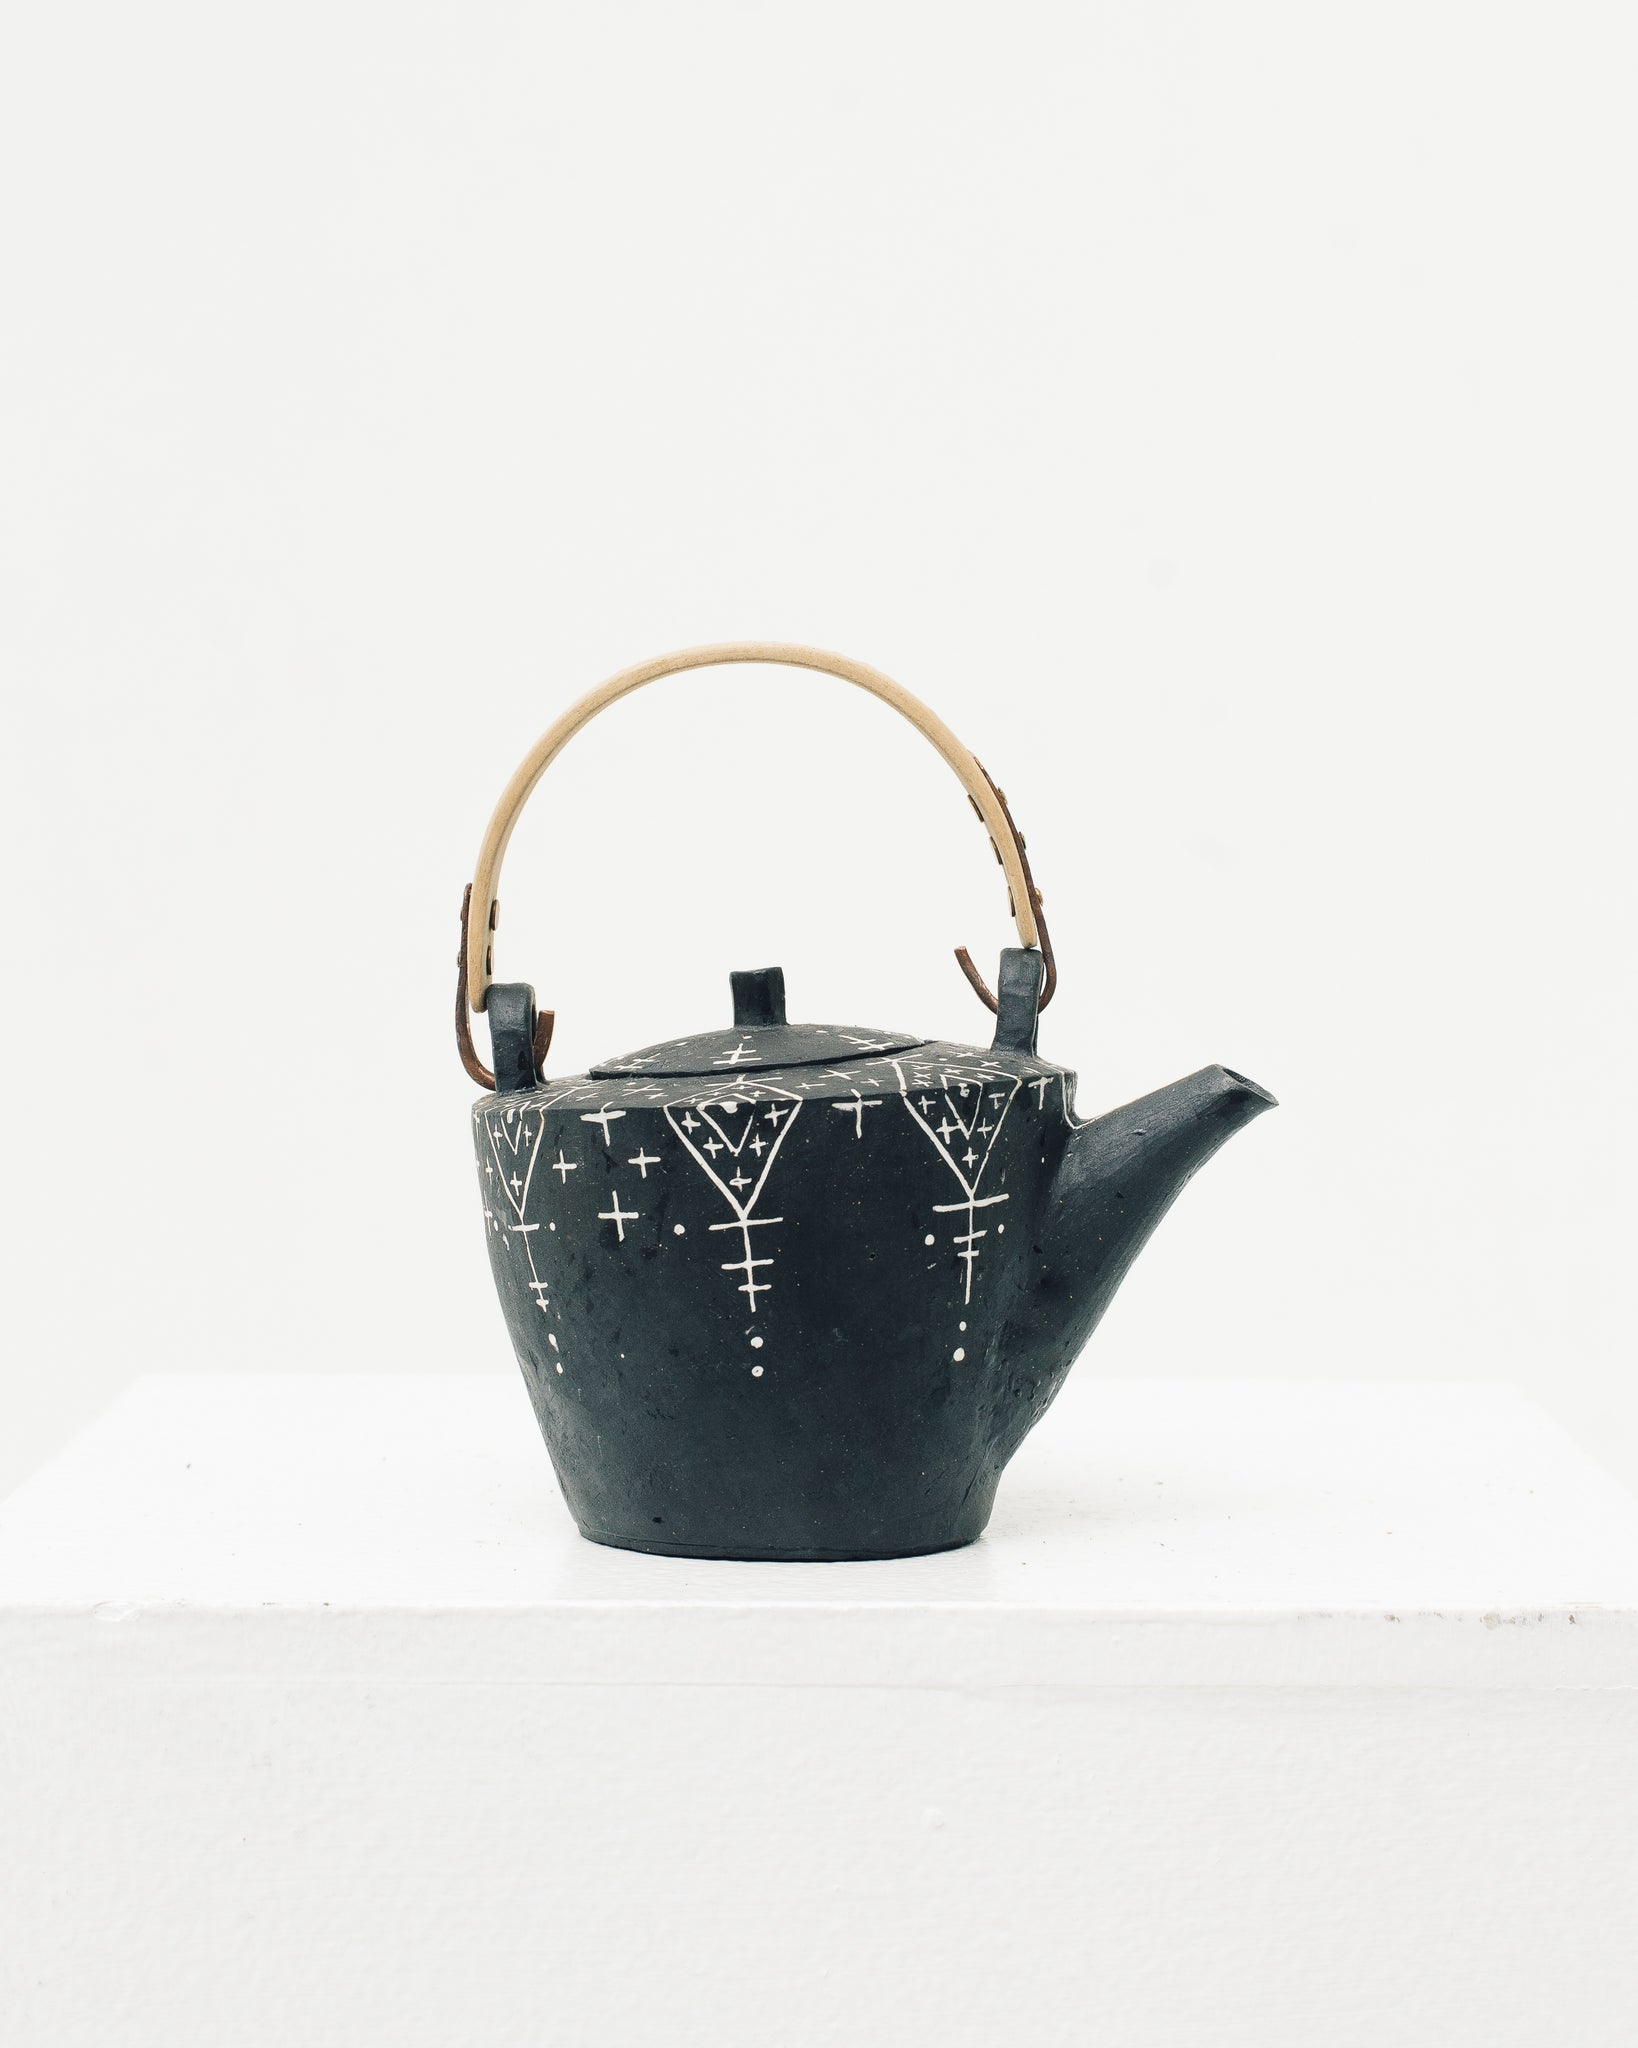 Ayame Bullock Black Mudcloth Teapot, Wood Handle